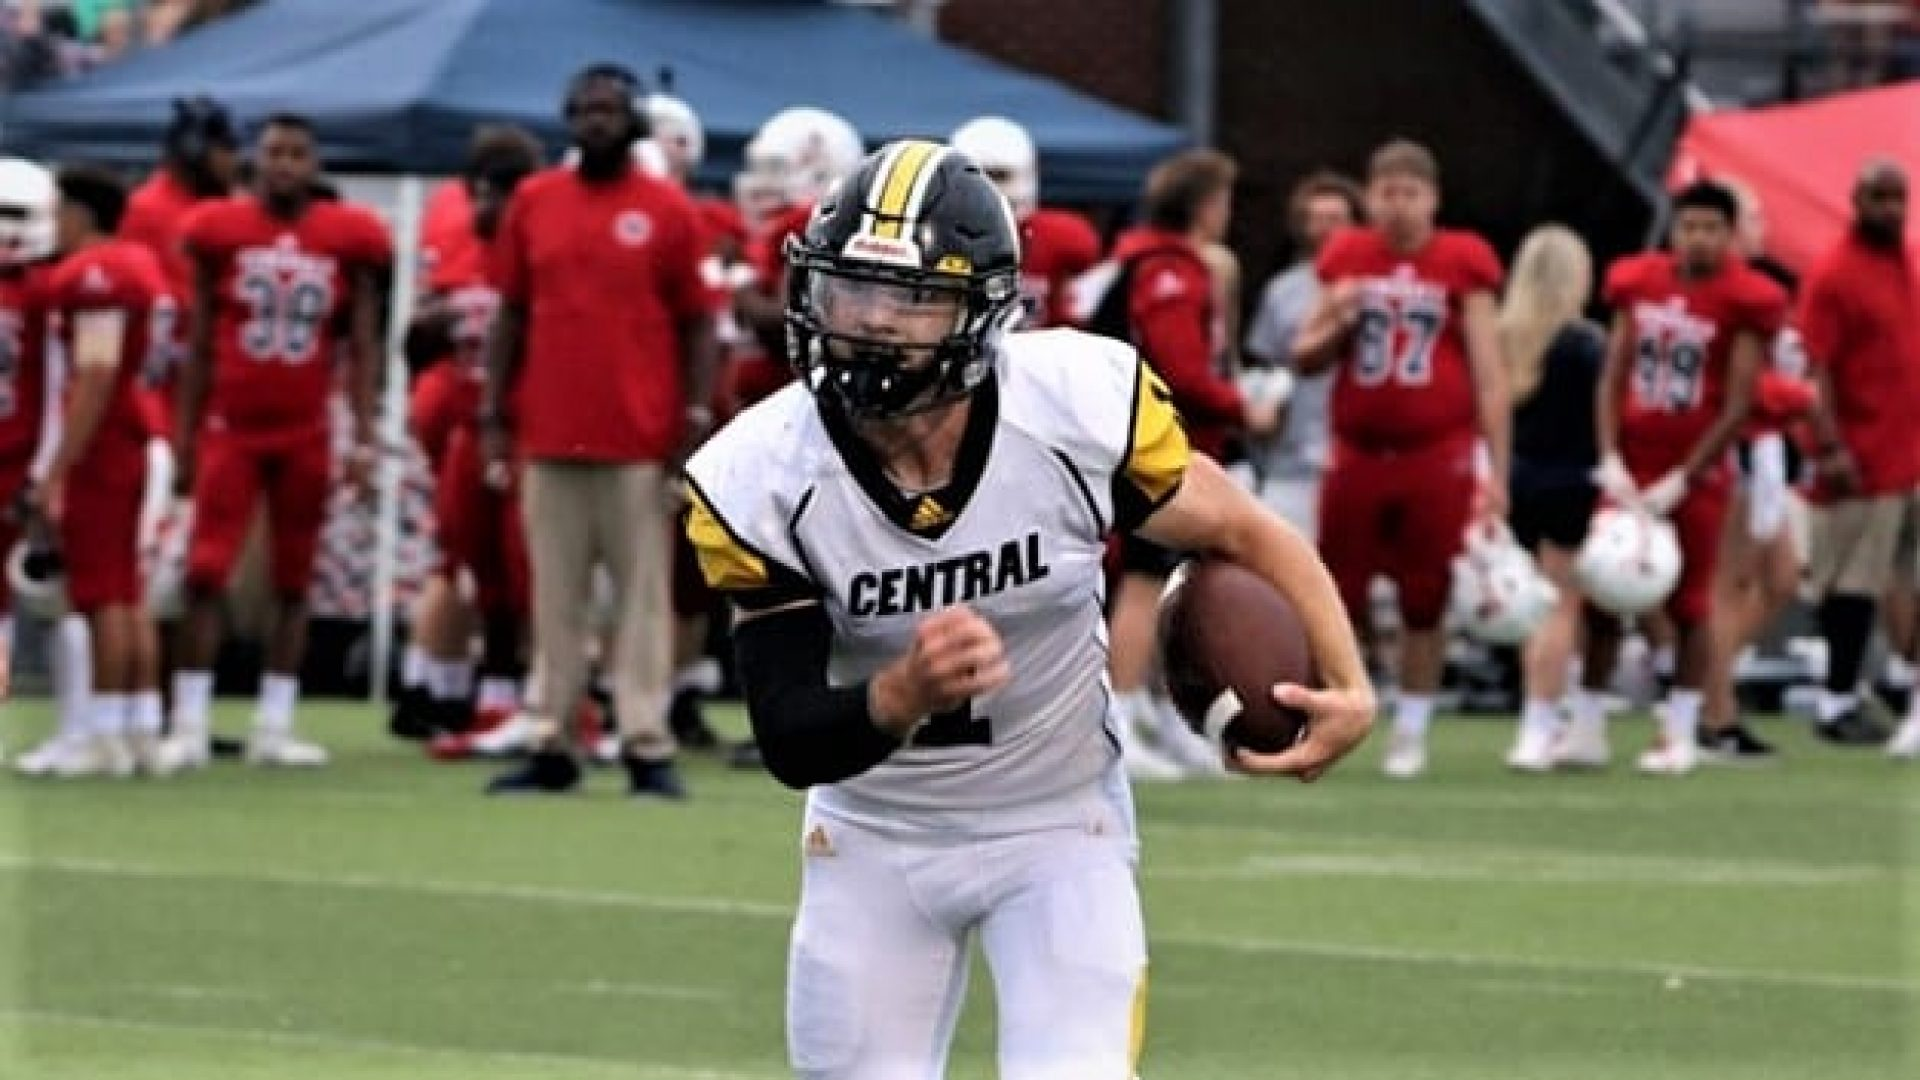 VIDEO HIGHLIGHTS: Johnson Central 21, Boyle County 20